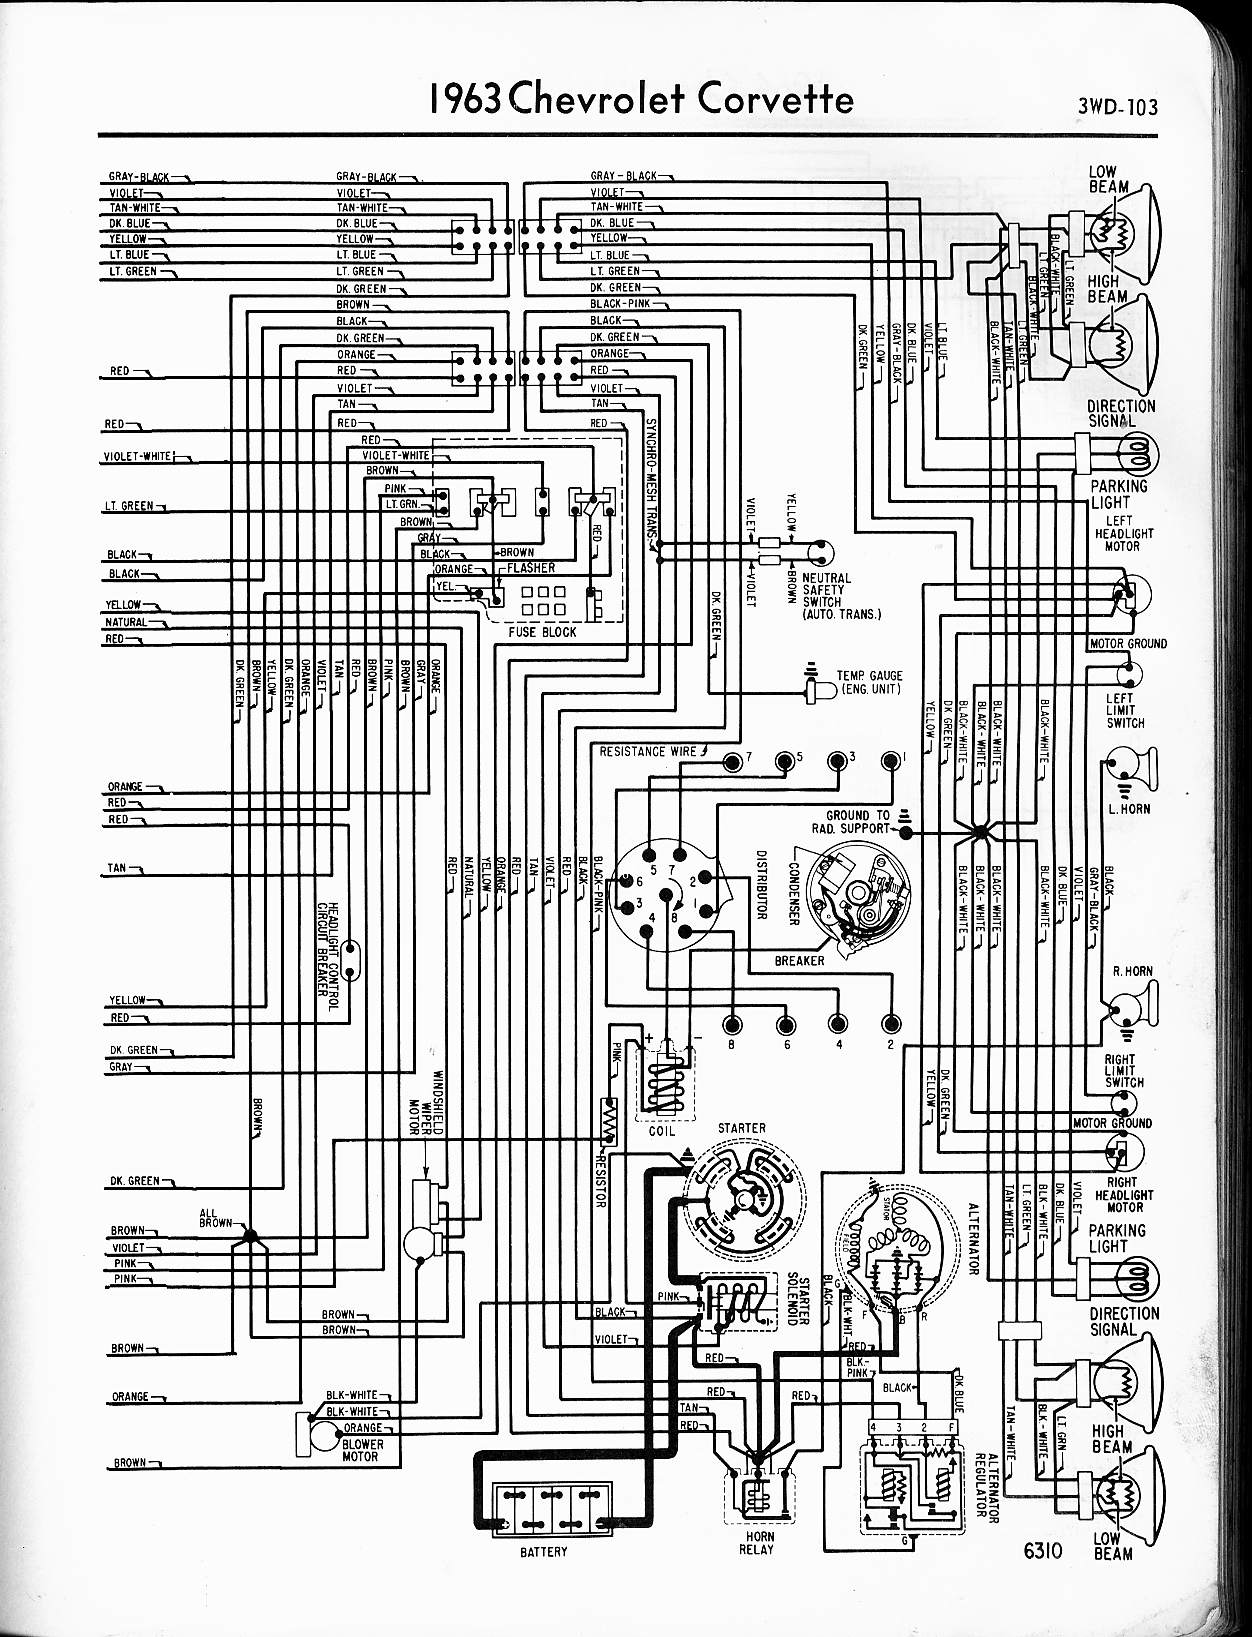 MWireChev63_3WD 103 57 65 chevy wiring diagrams 66 Corvette at crackthecode.co